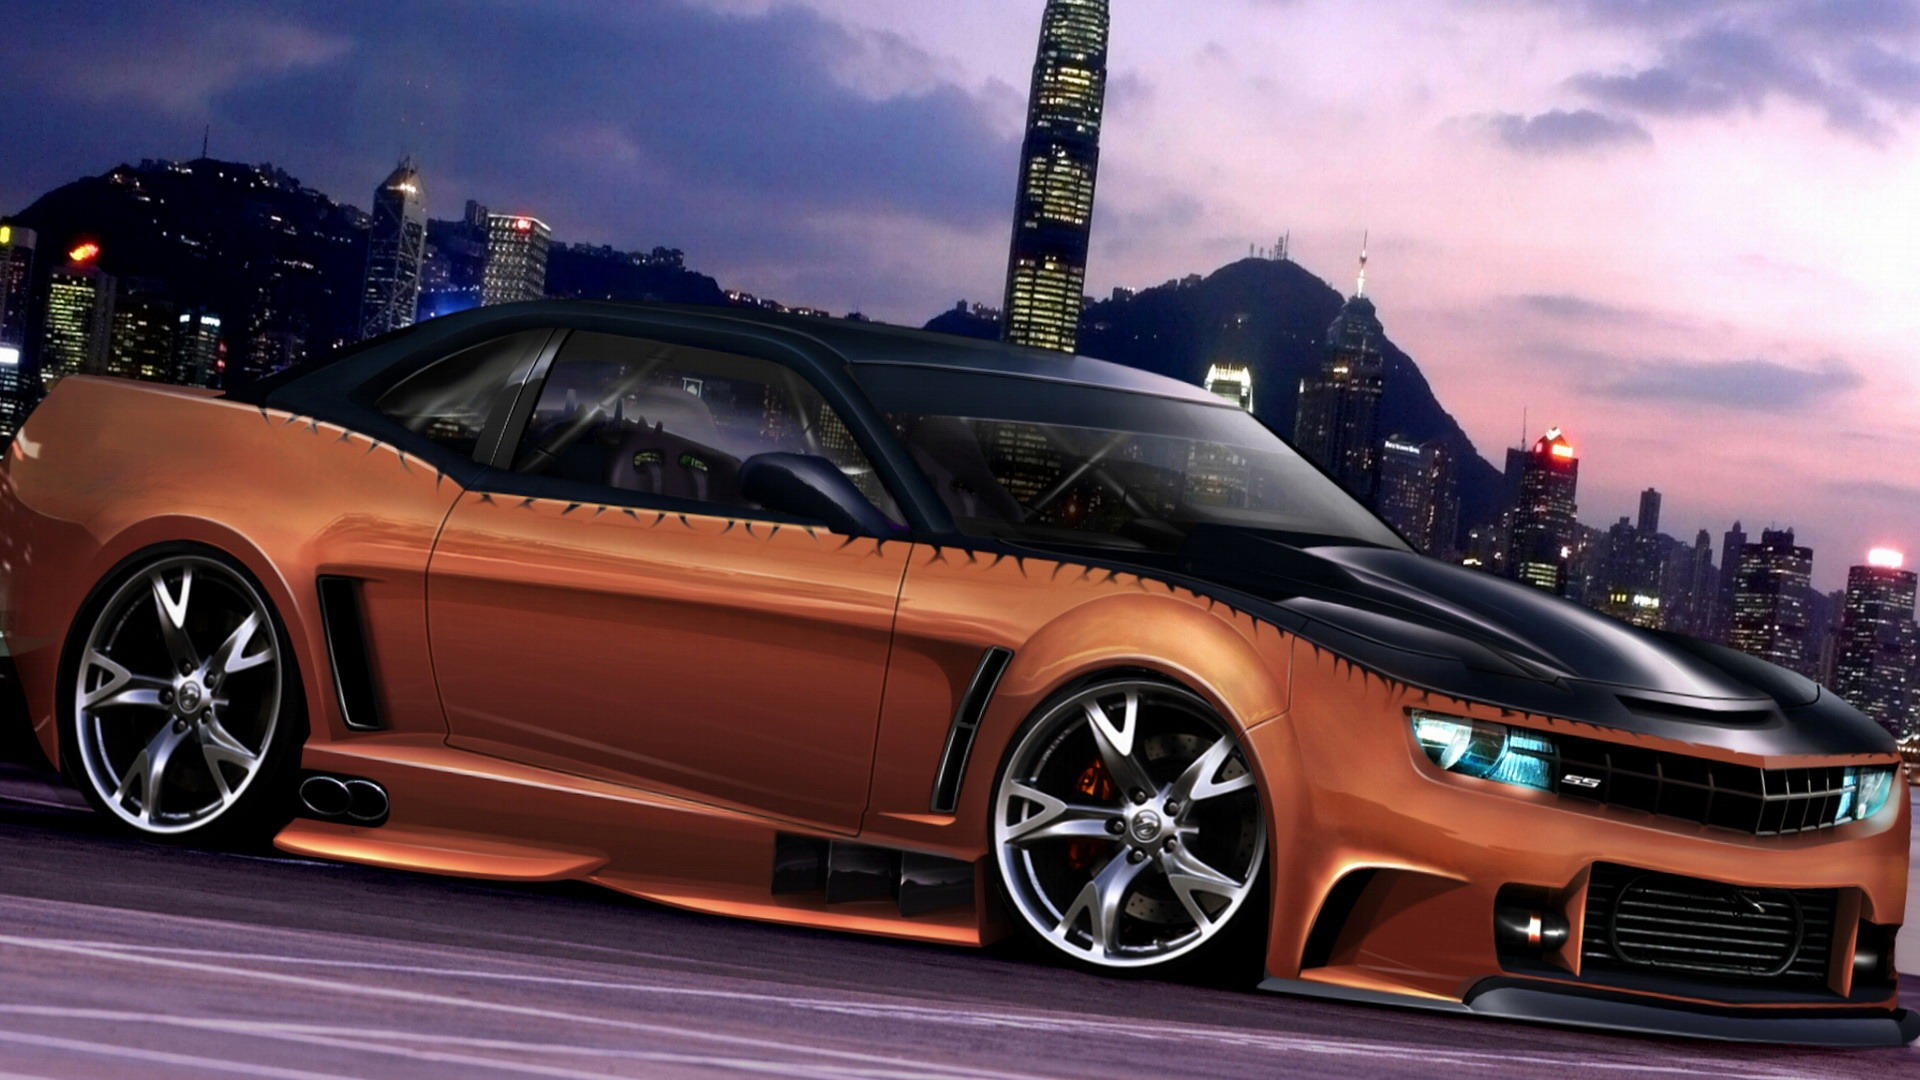 cool cars wallpapers for pc